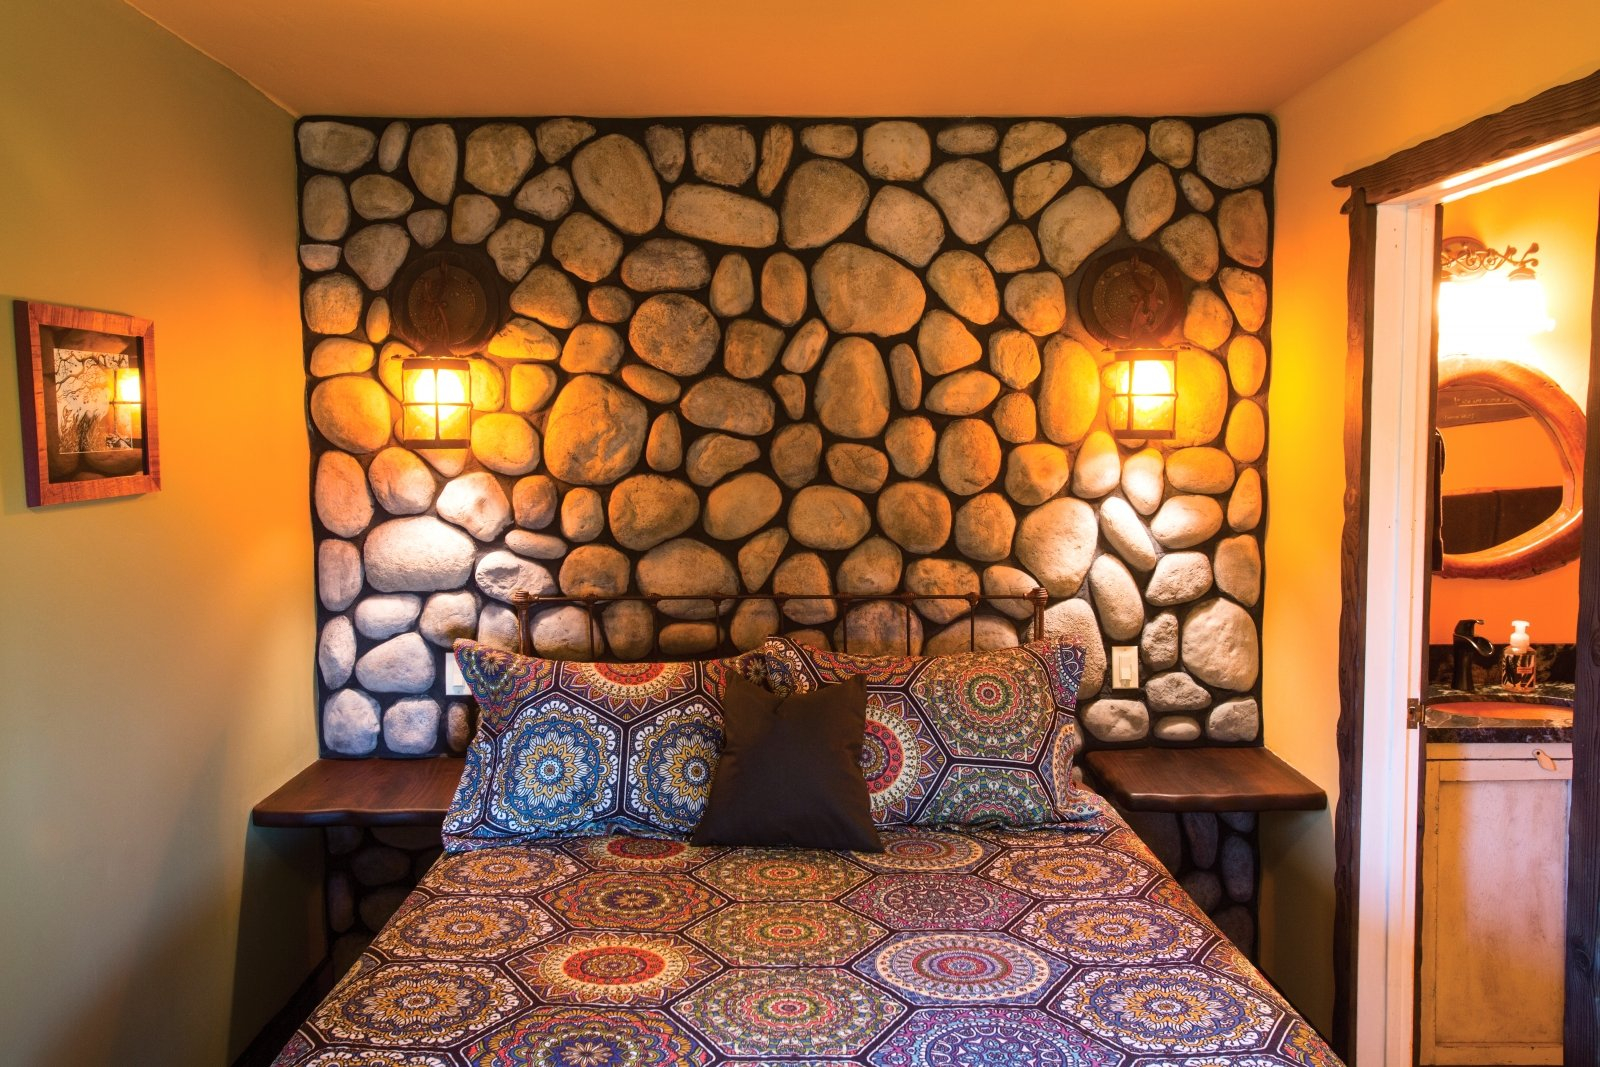 The Little Hobbit House's cozy bedroom with a dramatic stone wall (Photos by Jeremy Sykes)